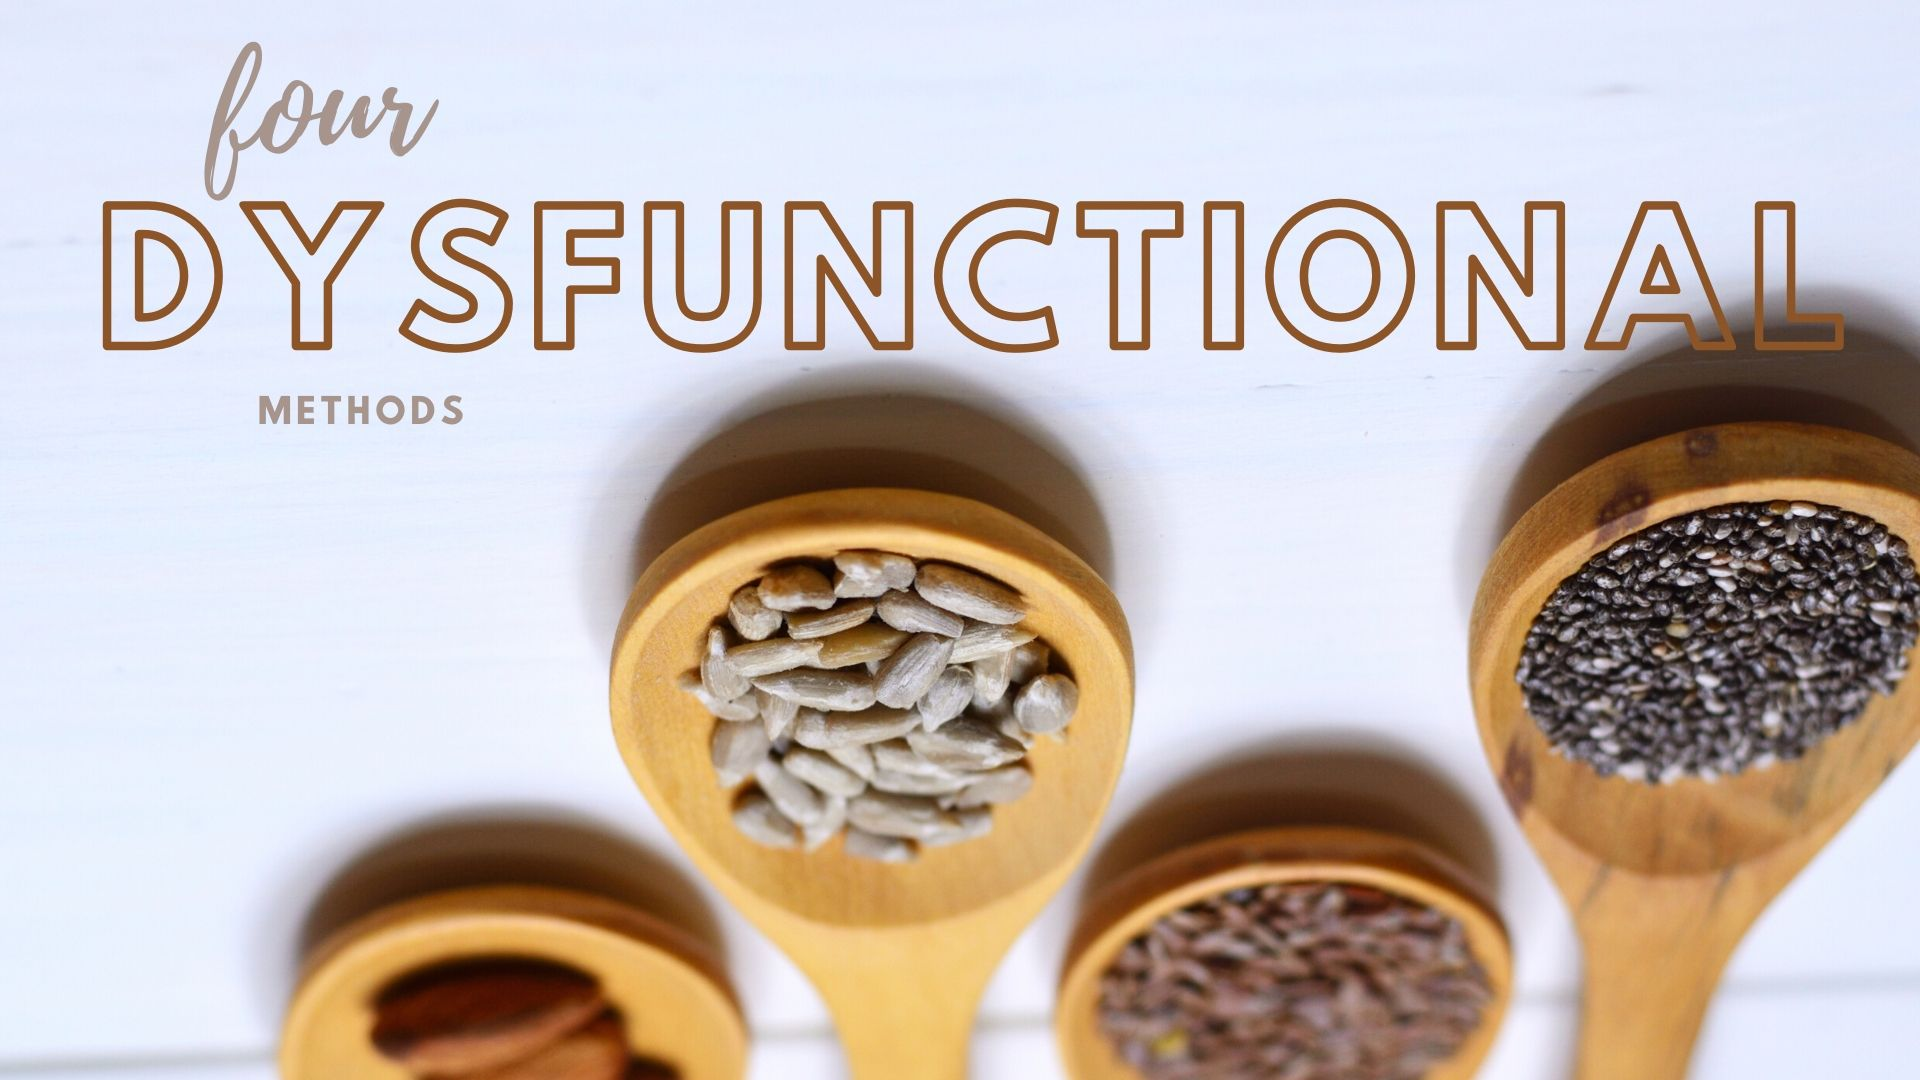 four dysfunctional methods to compromise - image contains four wooden spoons with different seeds